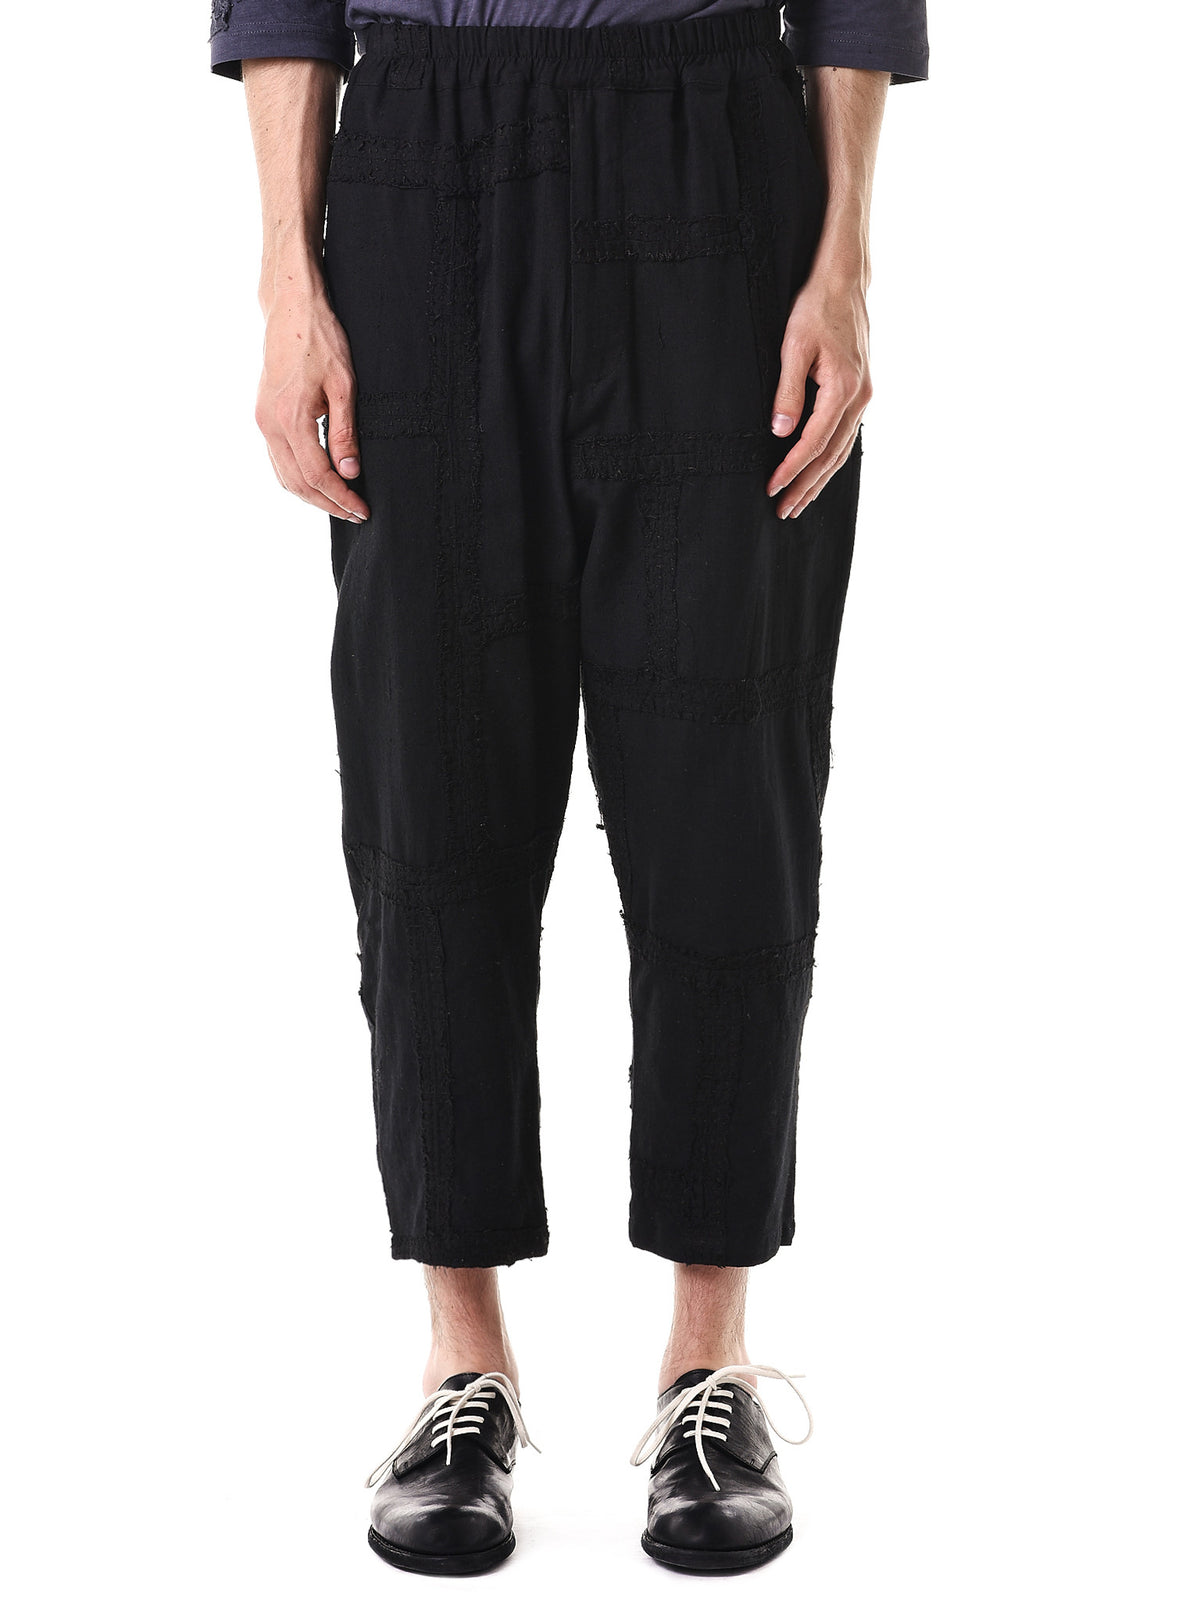 Stitched 'Cotton Khadi' Pants (130262M-BLACK) - H. Lorenzo